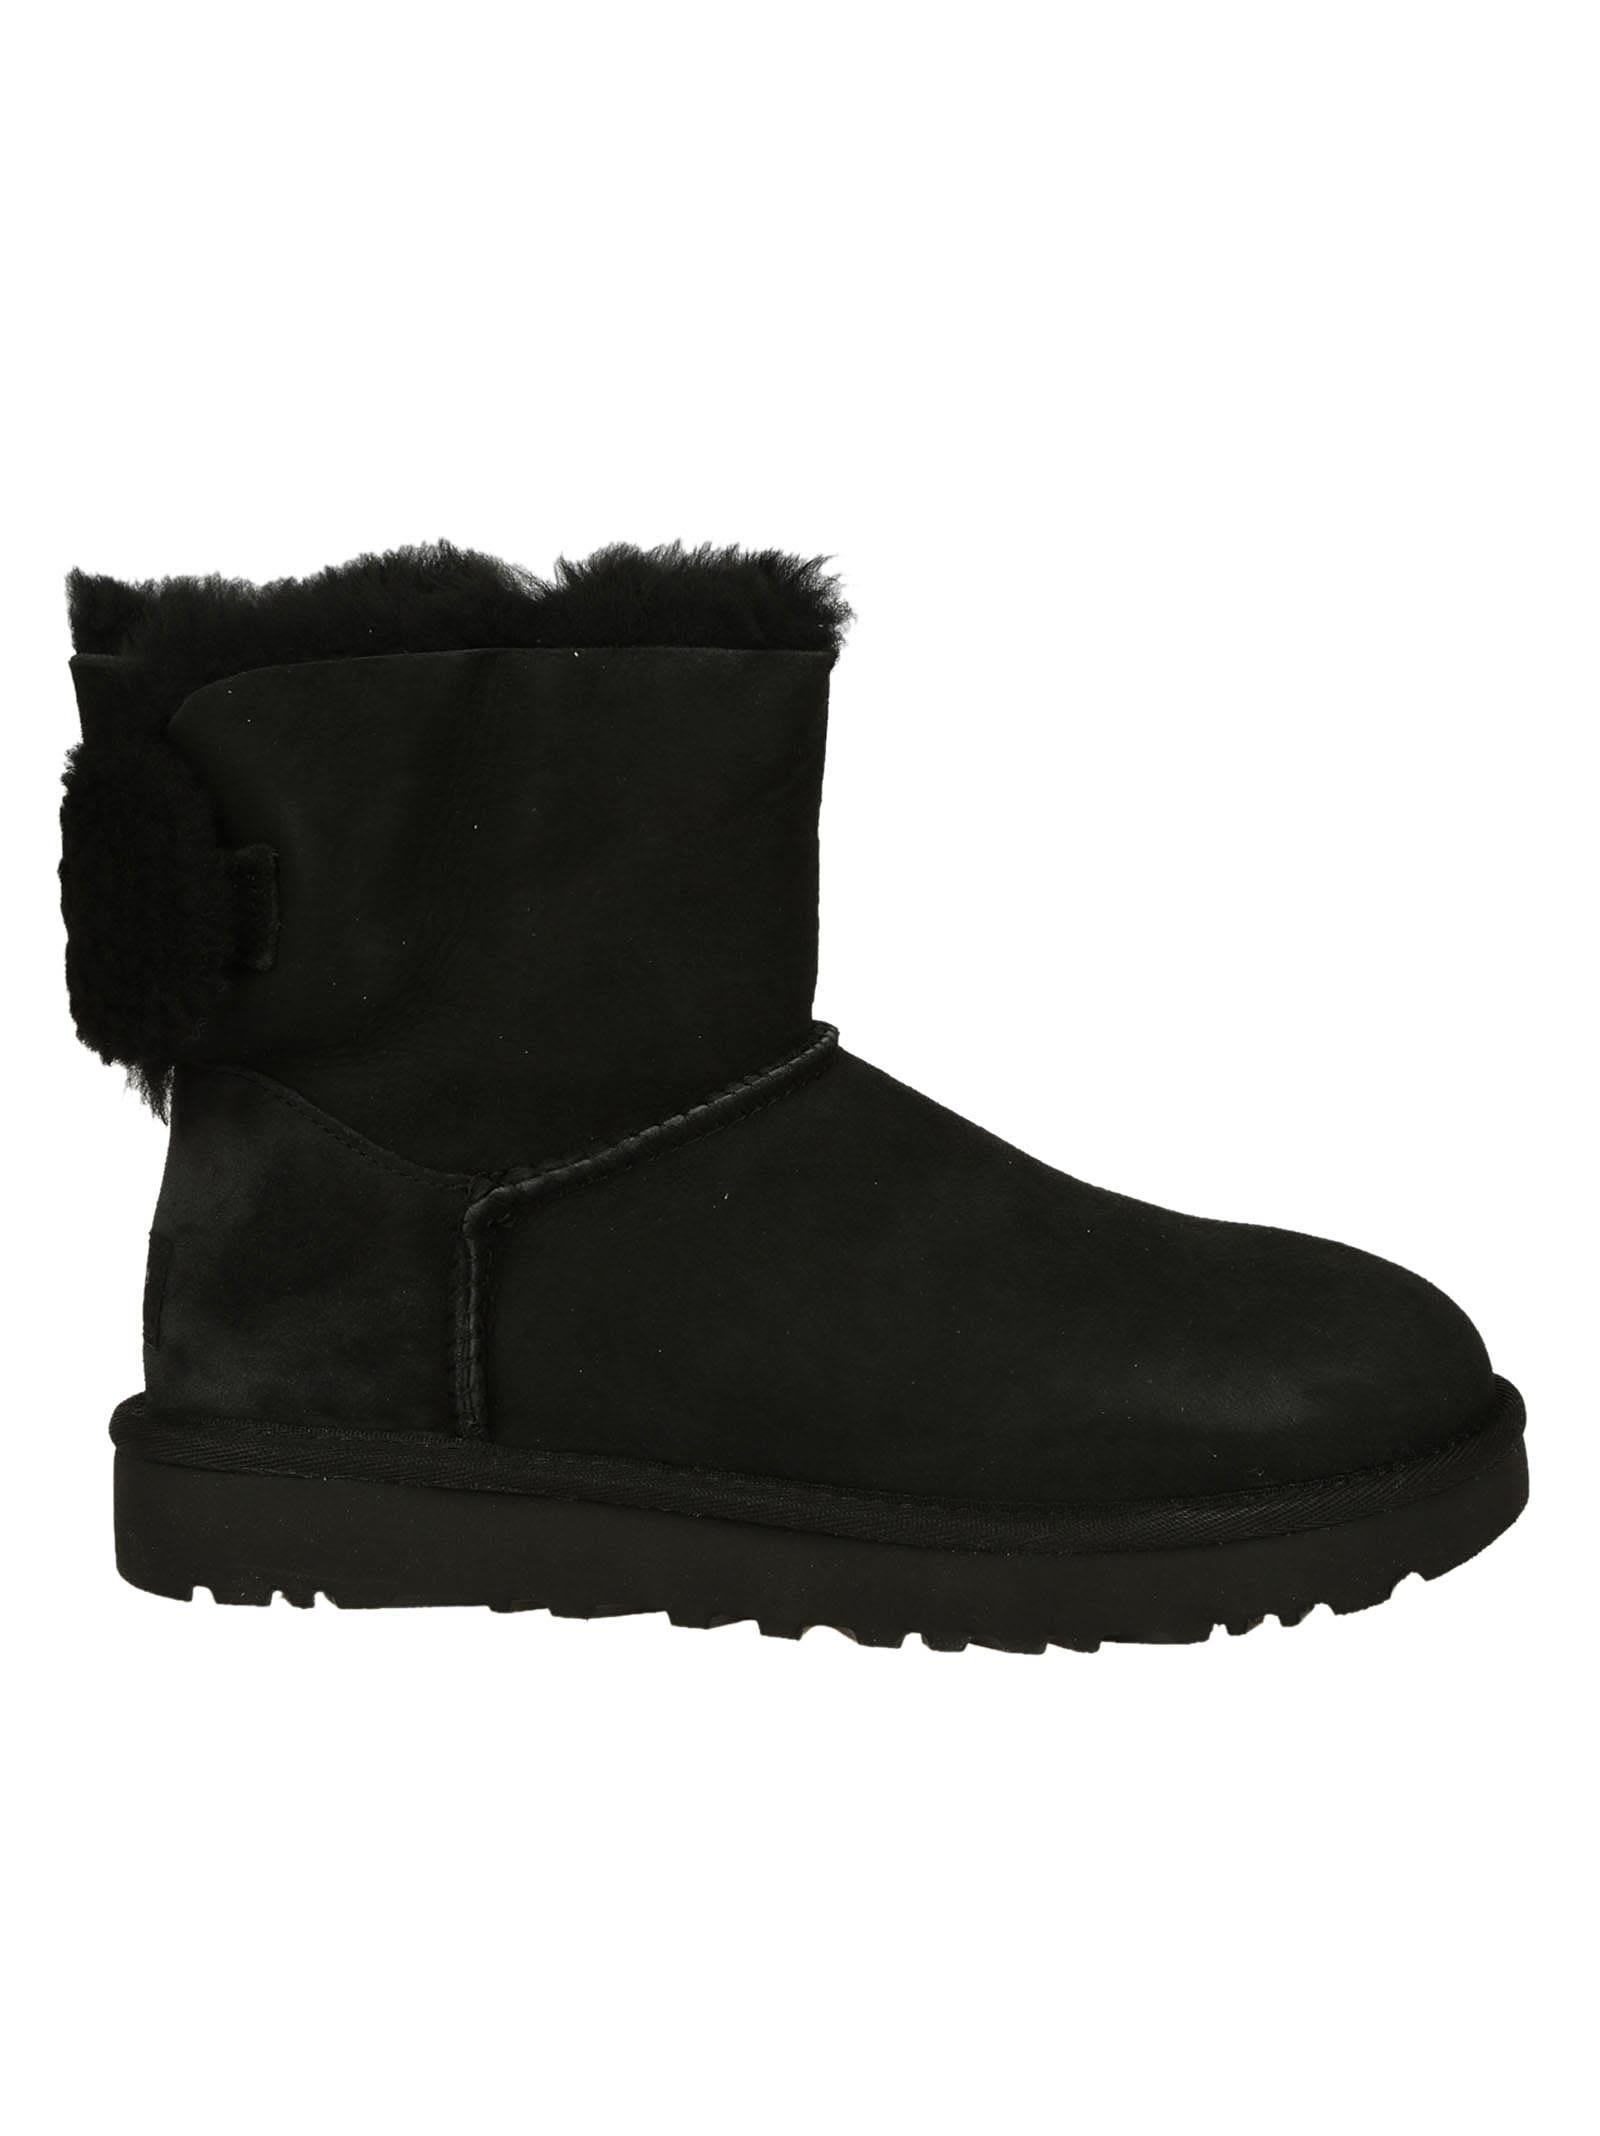 Ugg Arielle Boots In Black